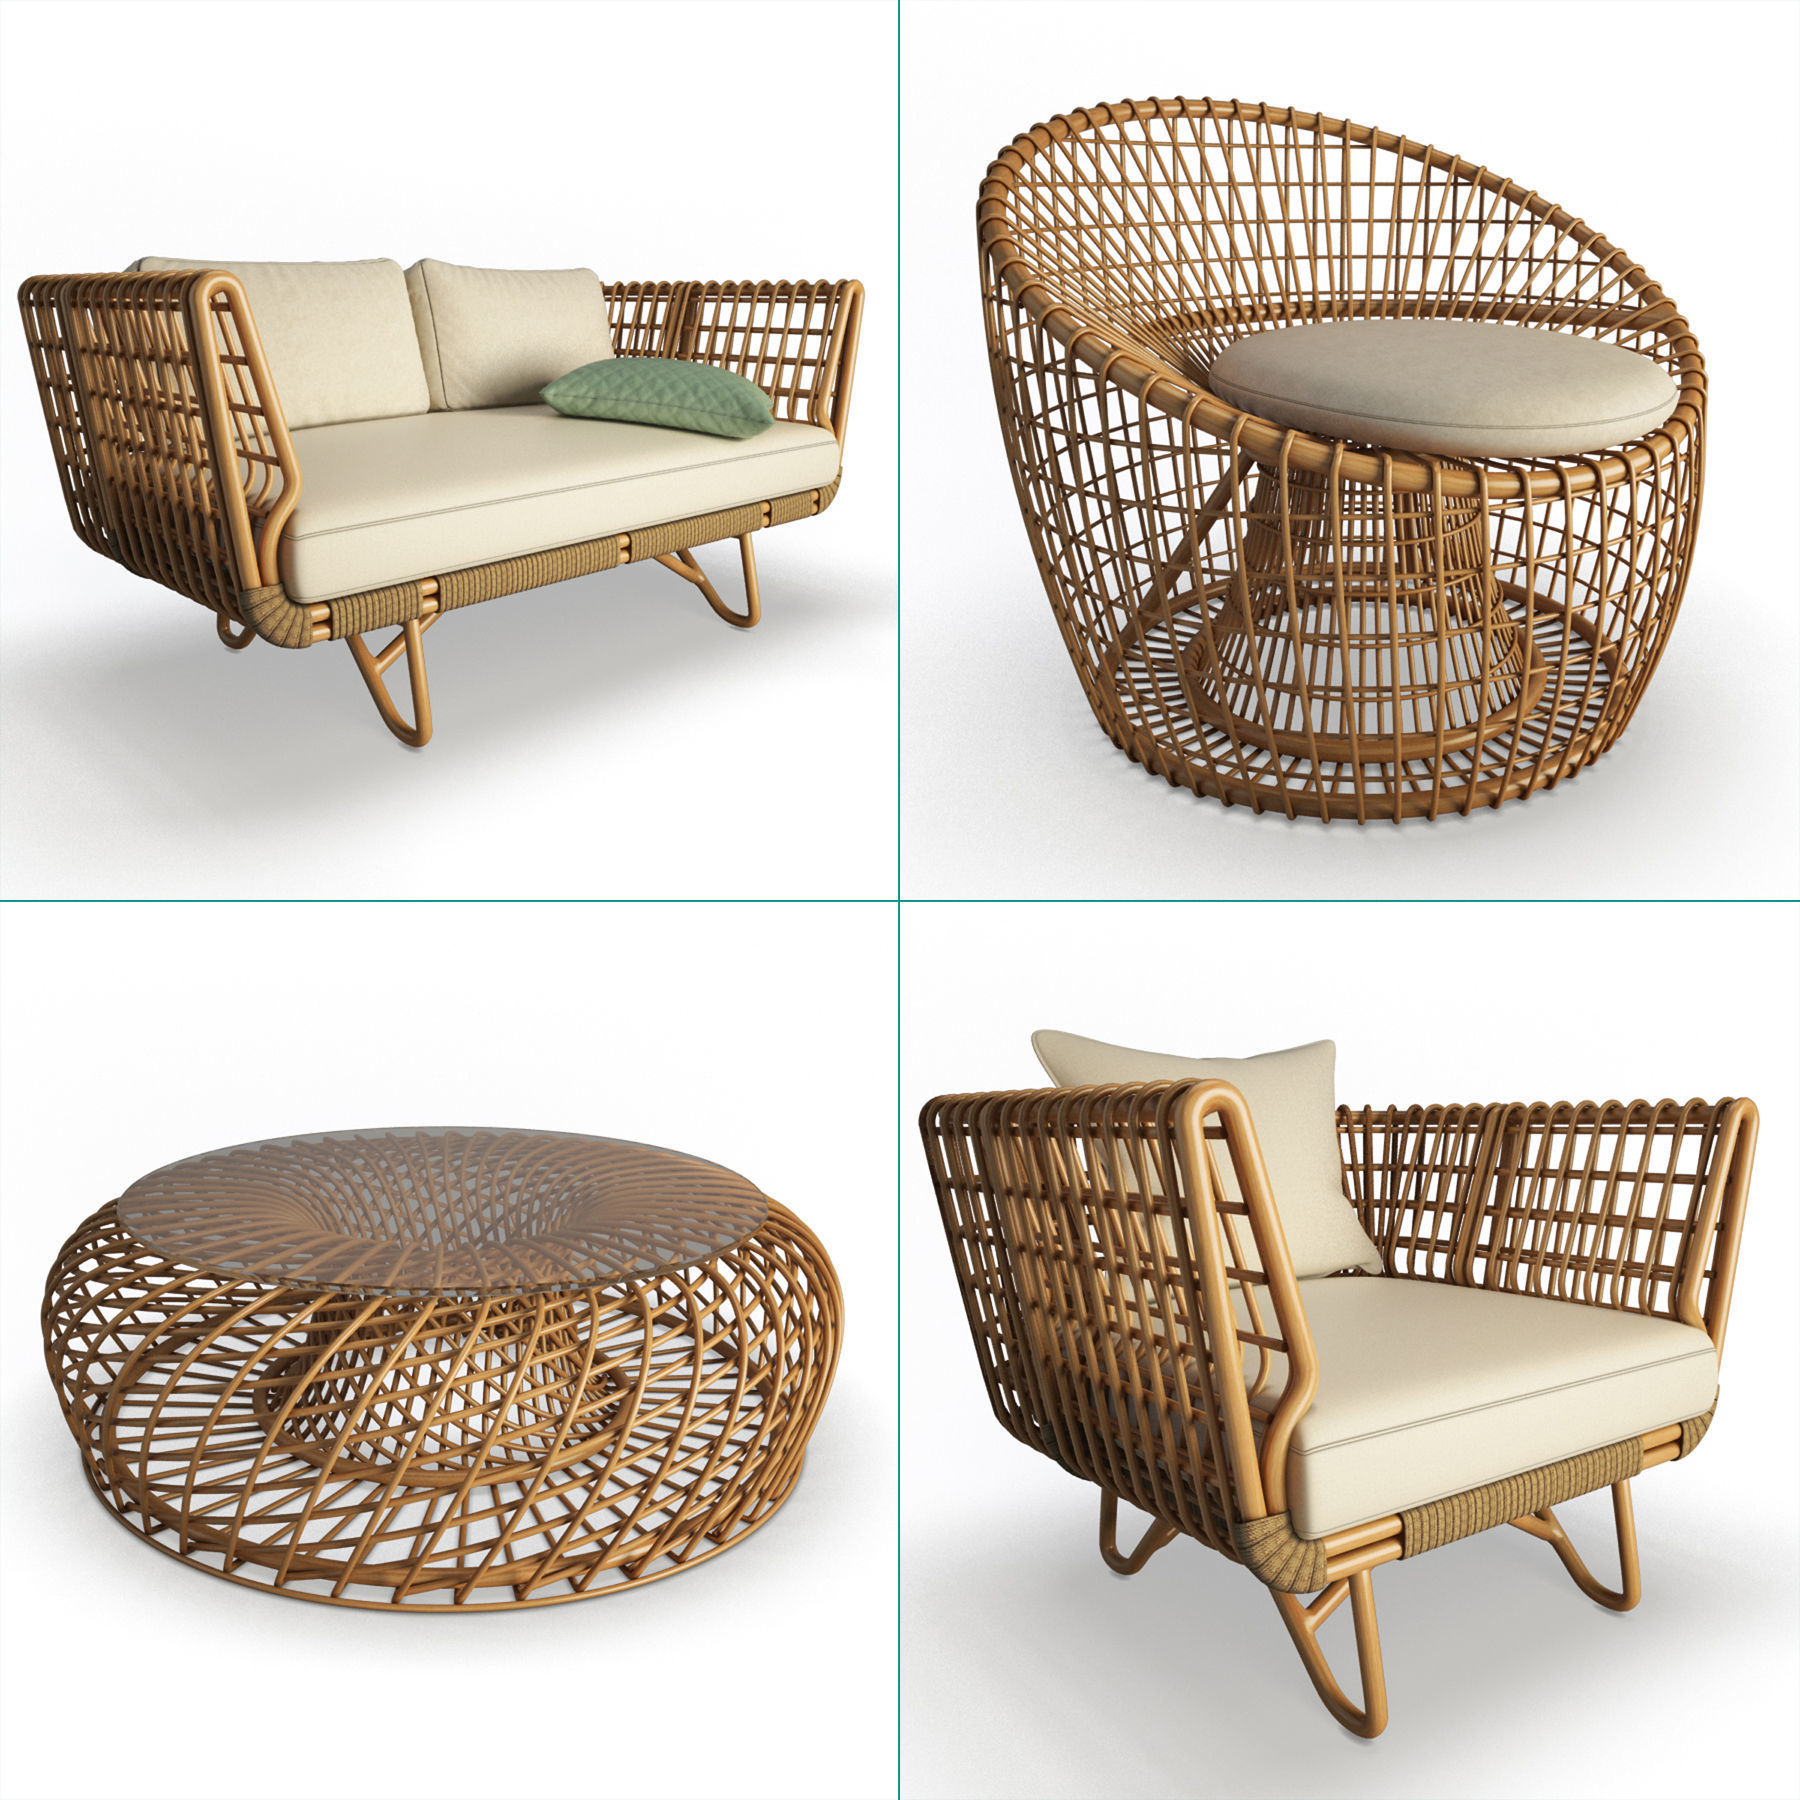 Nest Rattan Furniture Collection Cane-Line